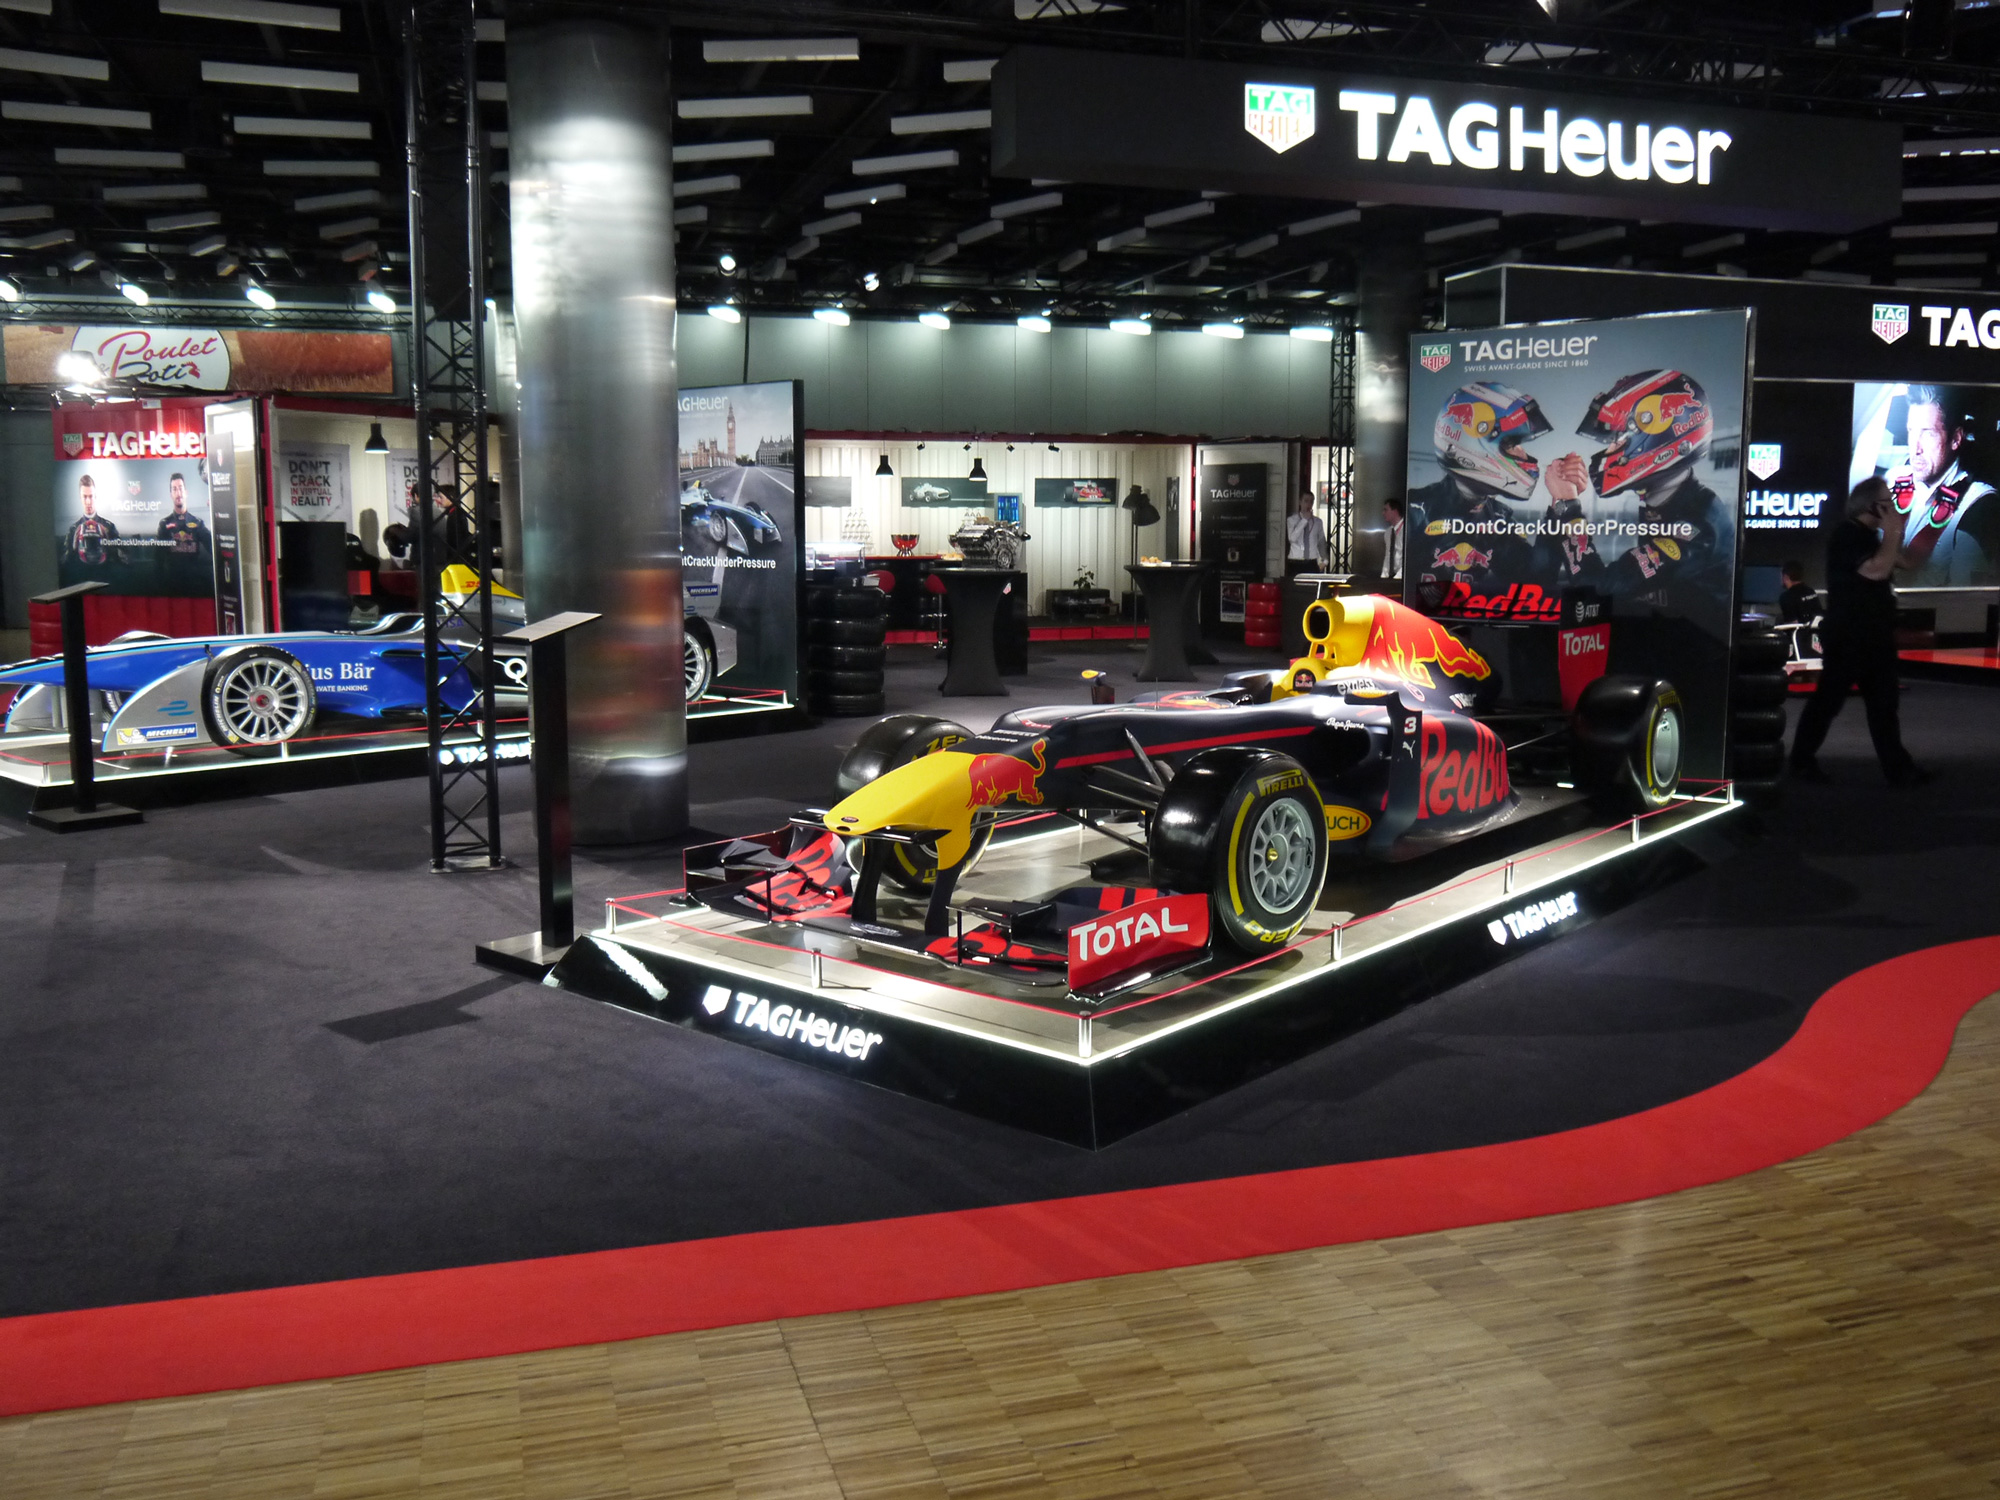 Red Bull & TAG Heuer Car